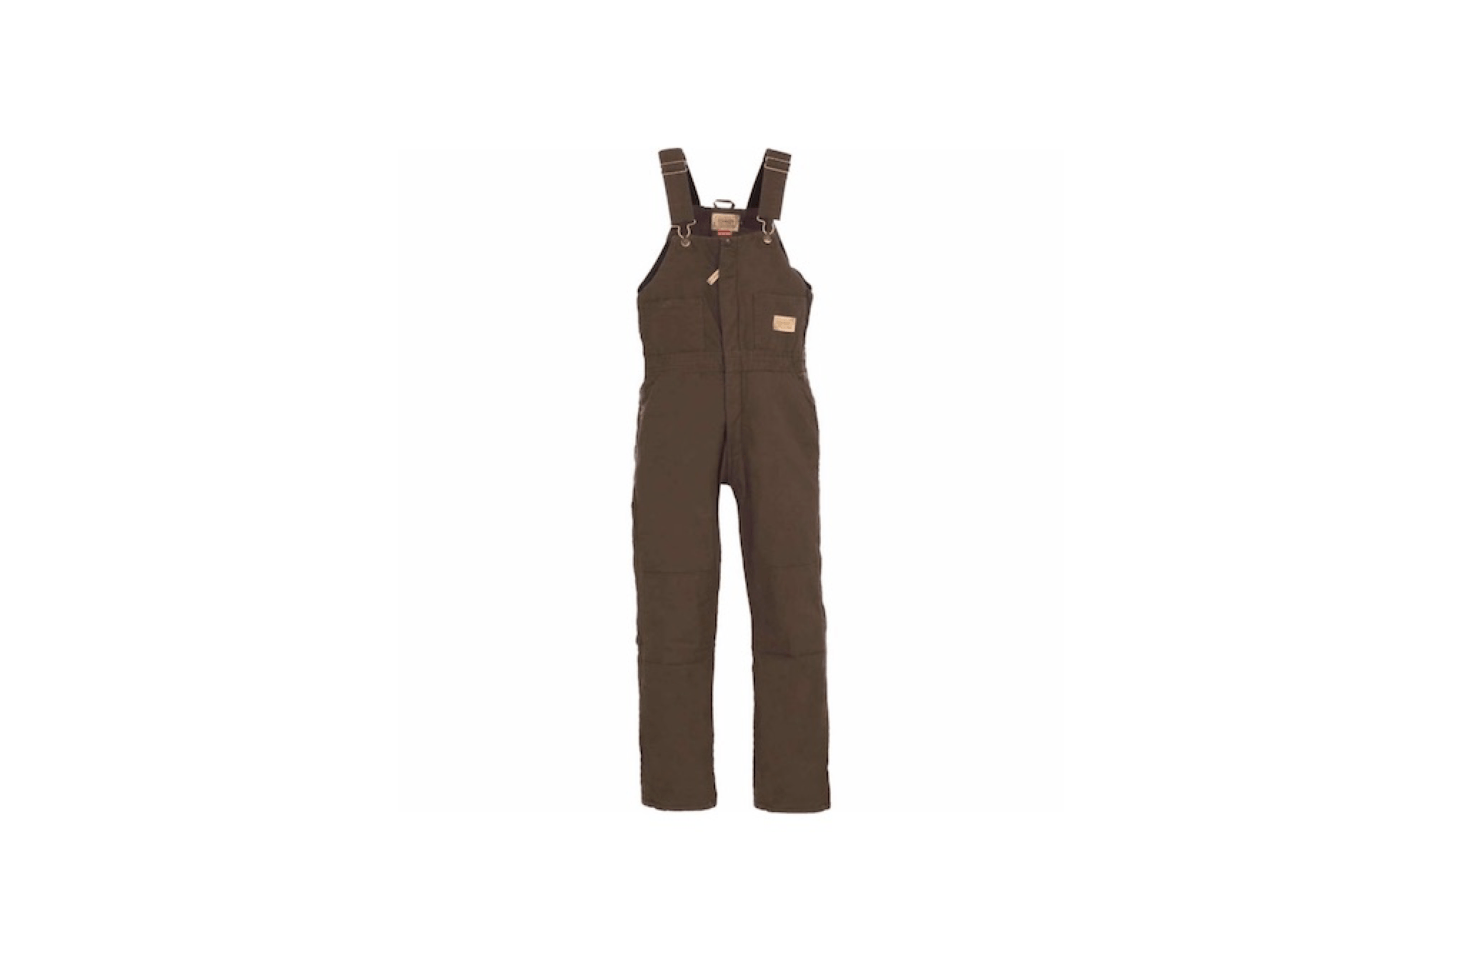 Available in dark brown, a pair of C. E. Schmidt Sanded/Washed Duck Quilt-Lined Insulated Bib Overalls has storm flaps over leg zippers to block wind and cold and waterproof reinforced knees; $5